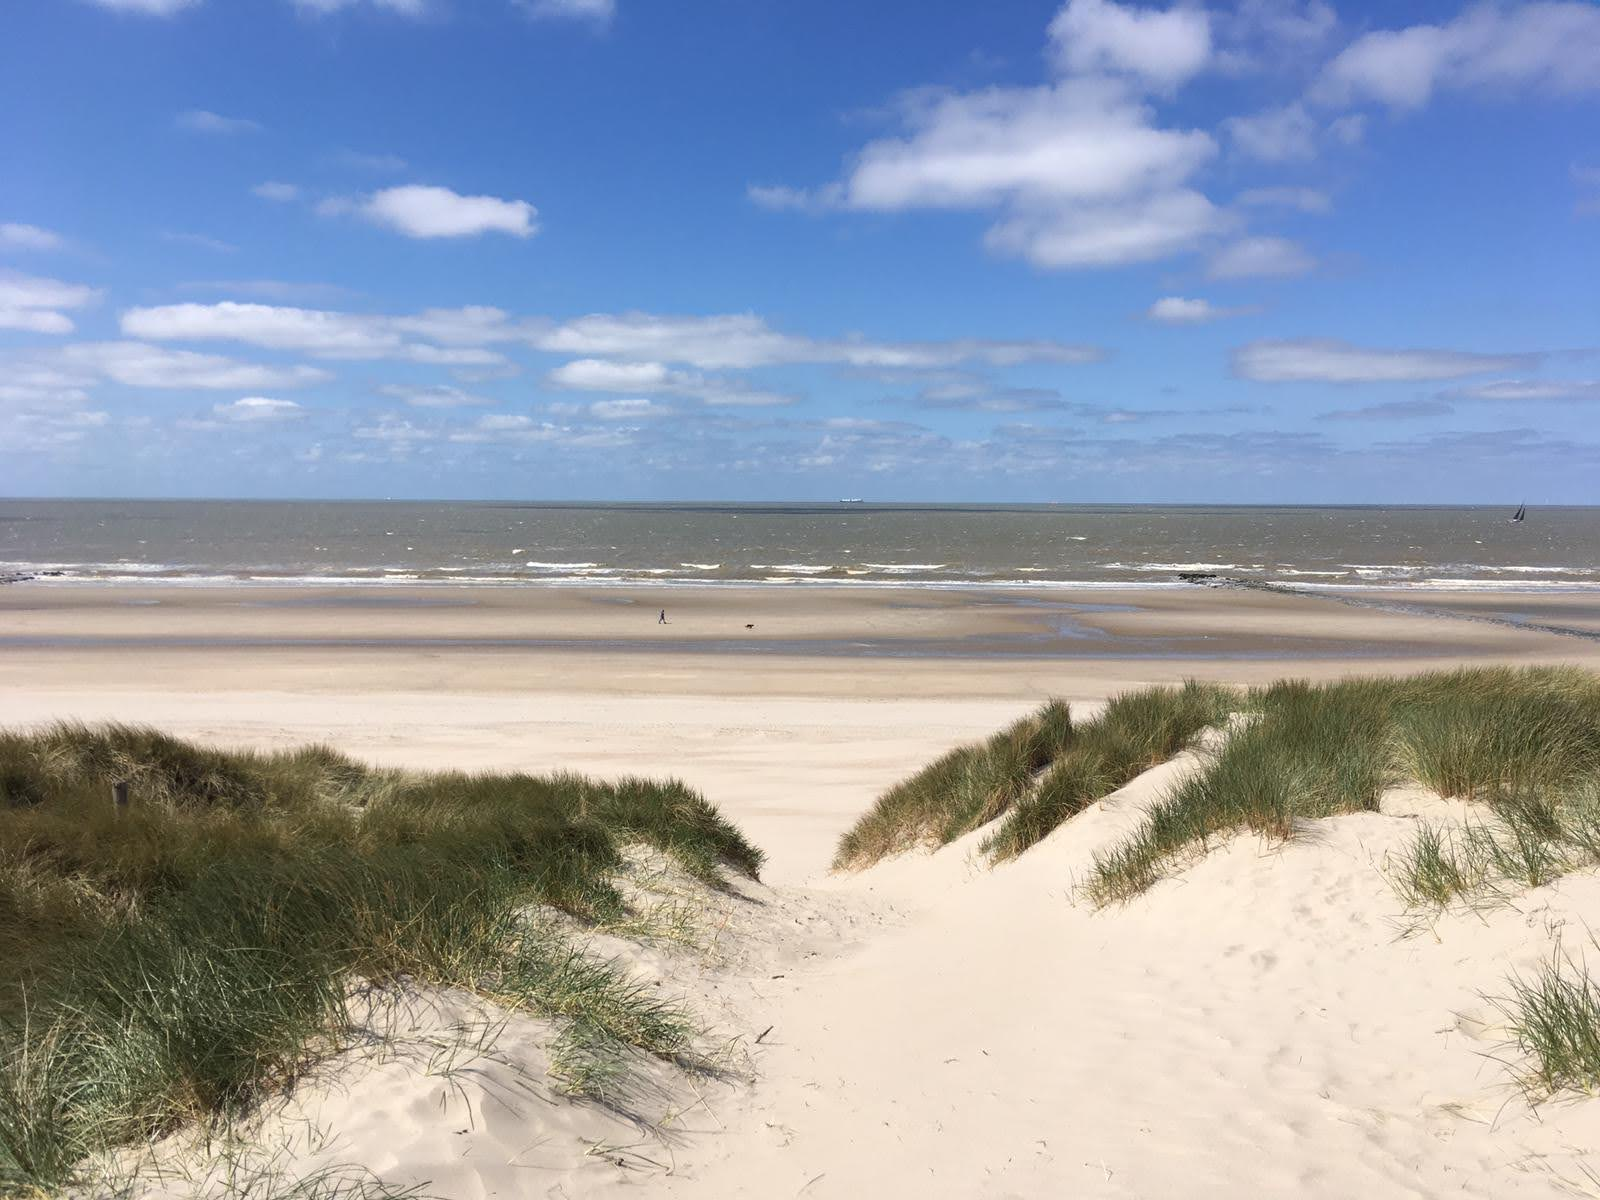 http://www.nordsee-chalet.com/wp-content/uploads/2021/03/IMG-20210309-WA0009.jpg